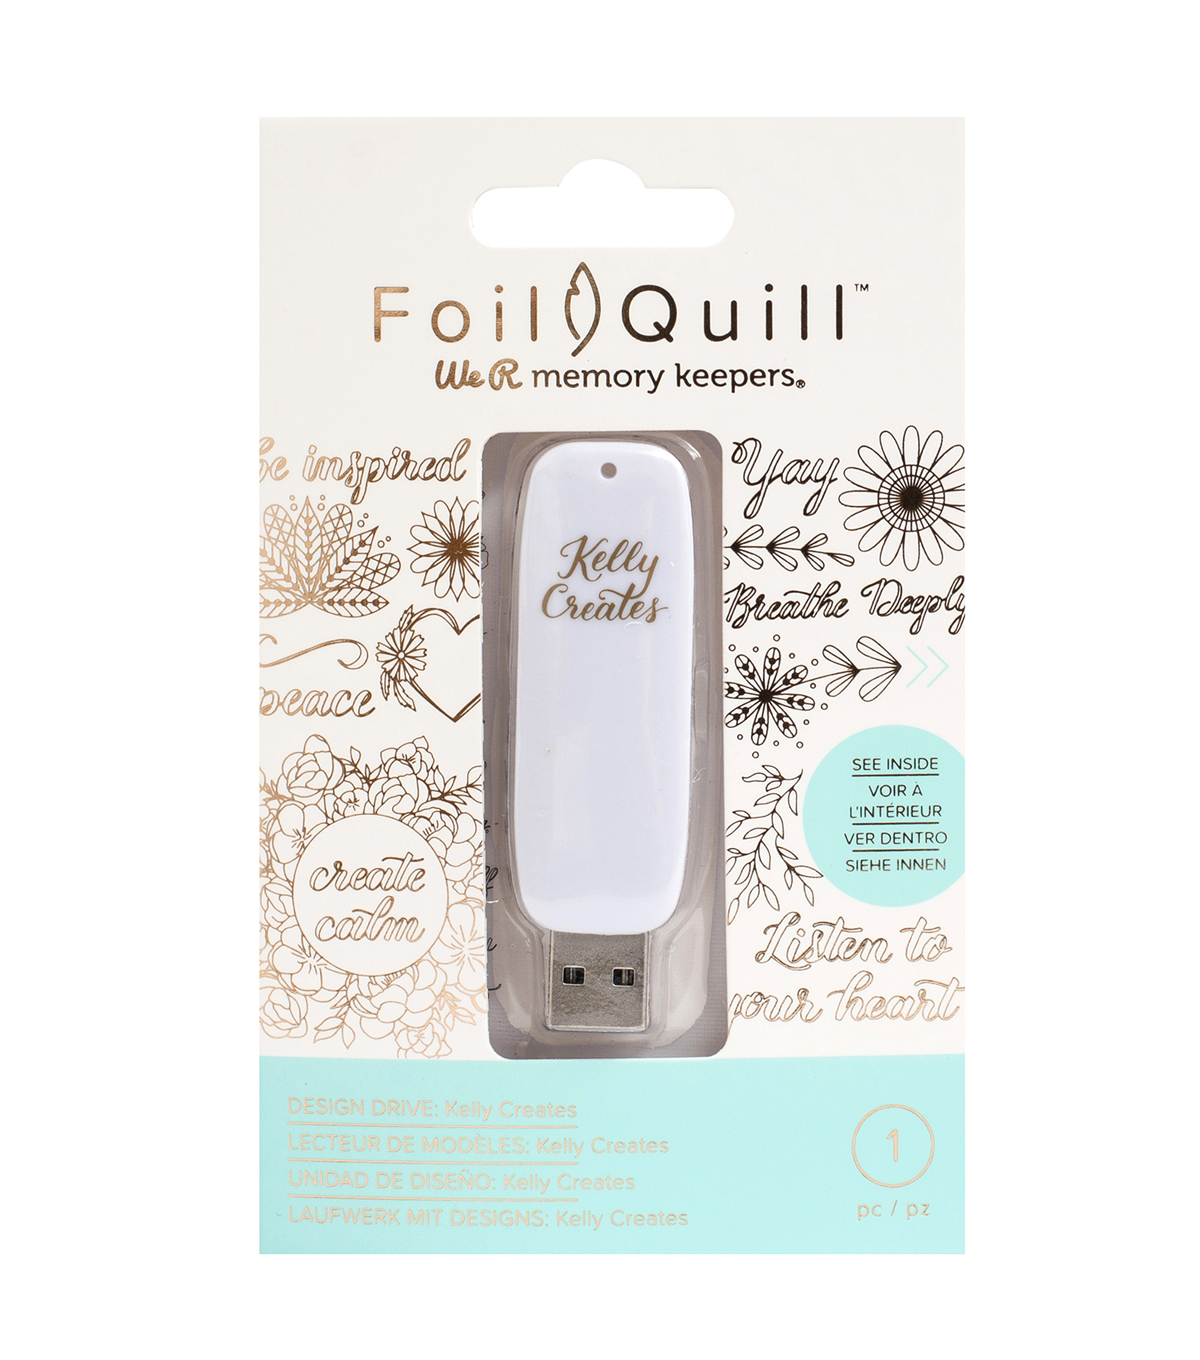 We R Memory Keepers Foil Quill USB Drive with Kelly Creates 200 Designs